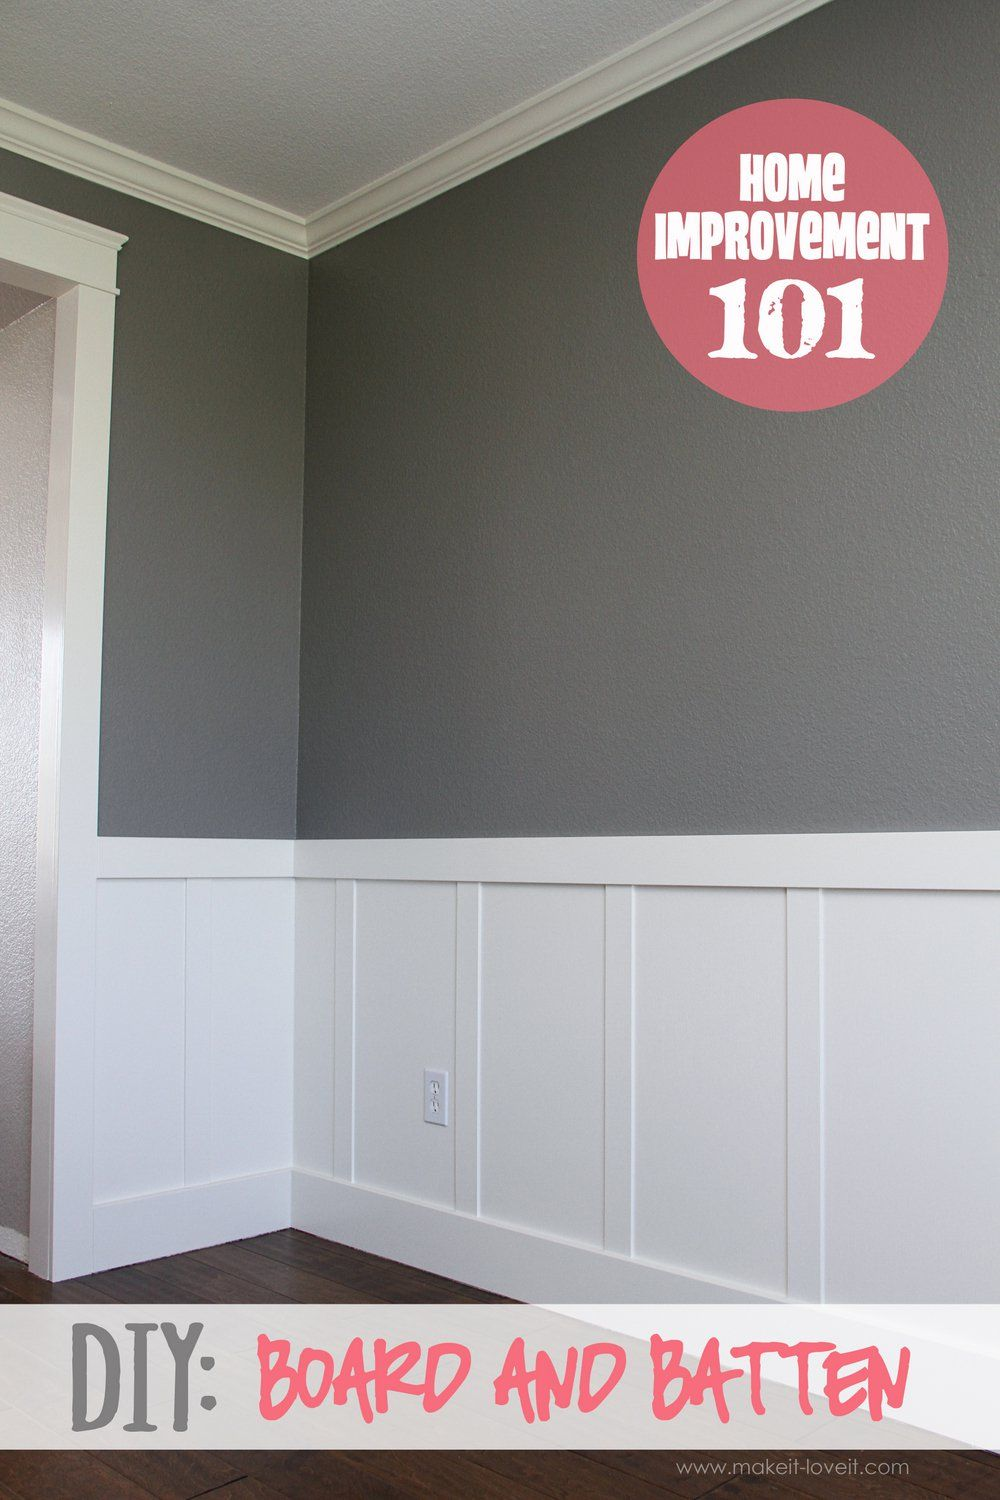 Diy wainscoting dining room - Home Improvement Diy Board And Batten Dining Room